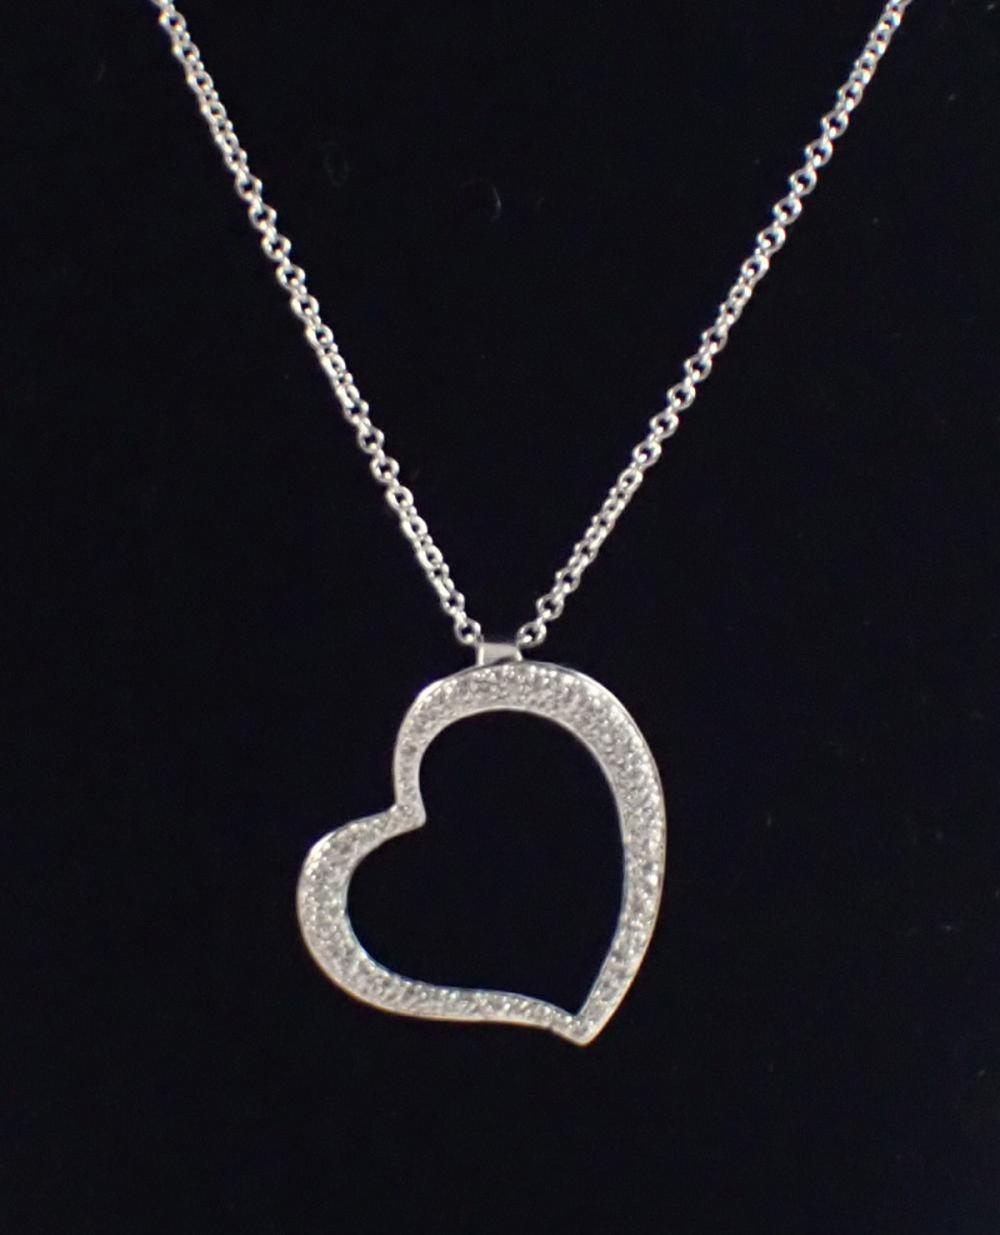 DIAMOND AND WHITE GOLD PENDANT NECKLACE